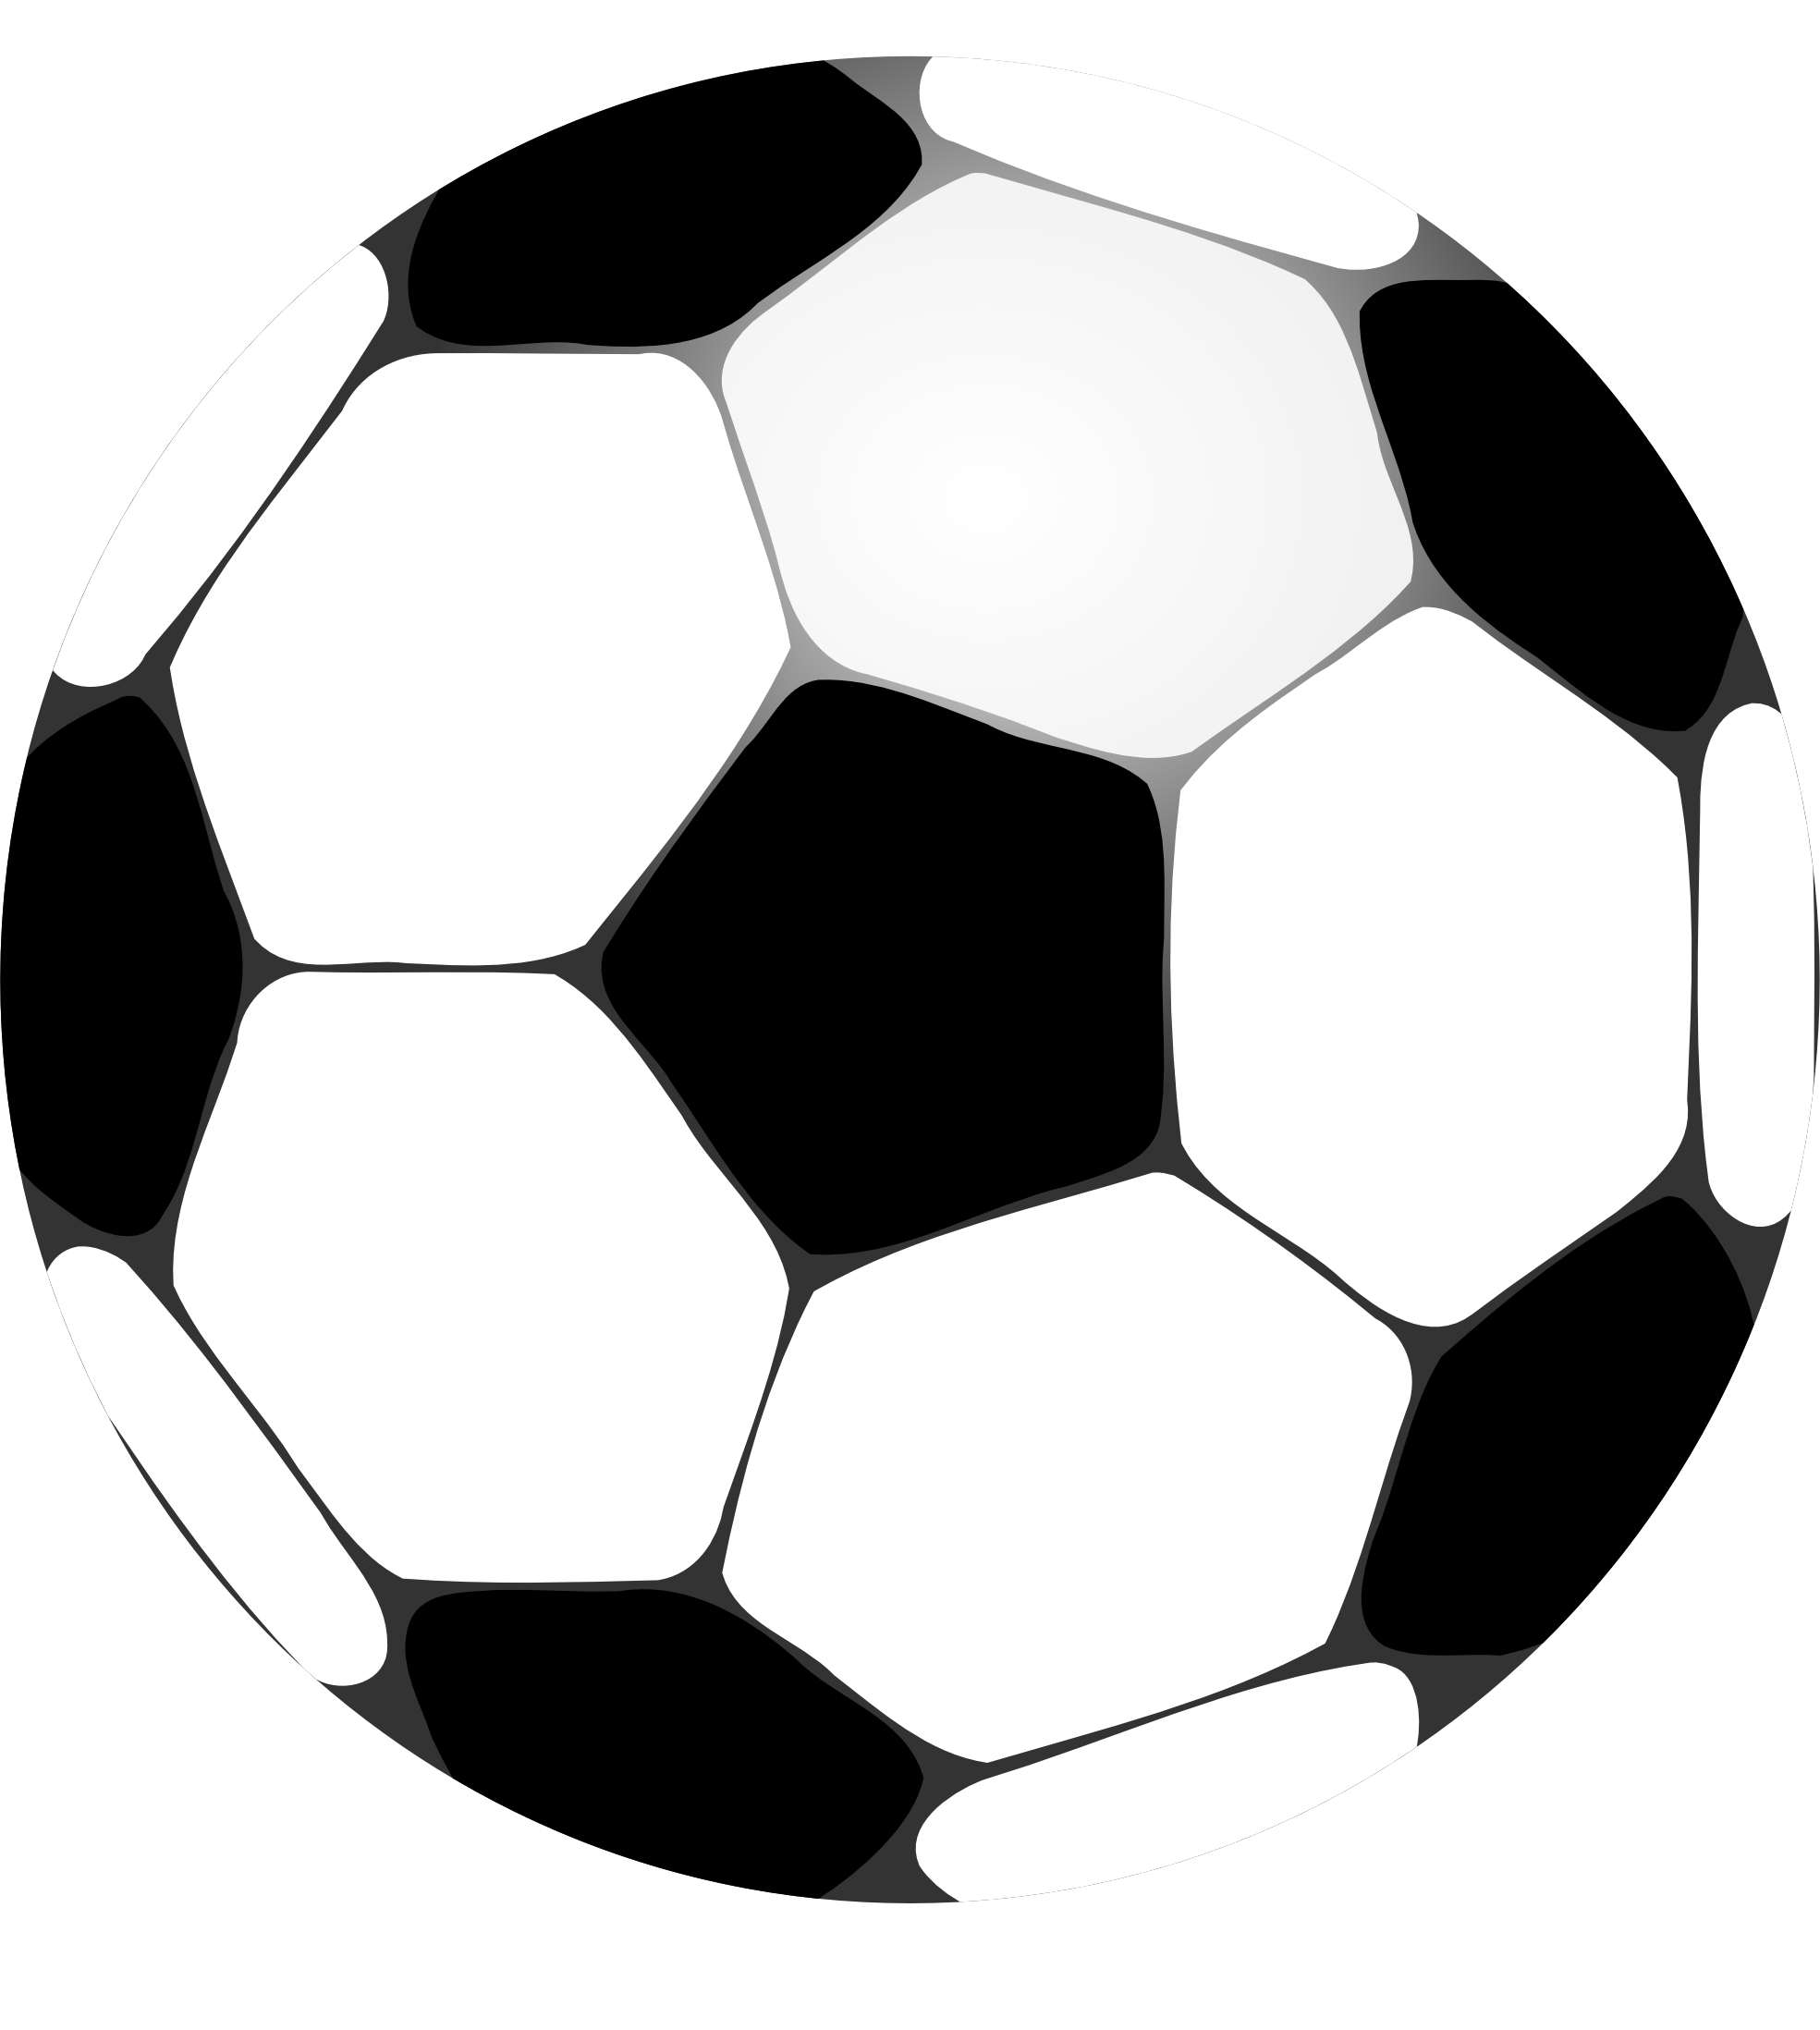 Soccer ball clip art. Evidence clipart equipment